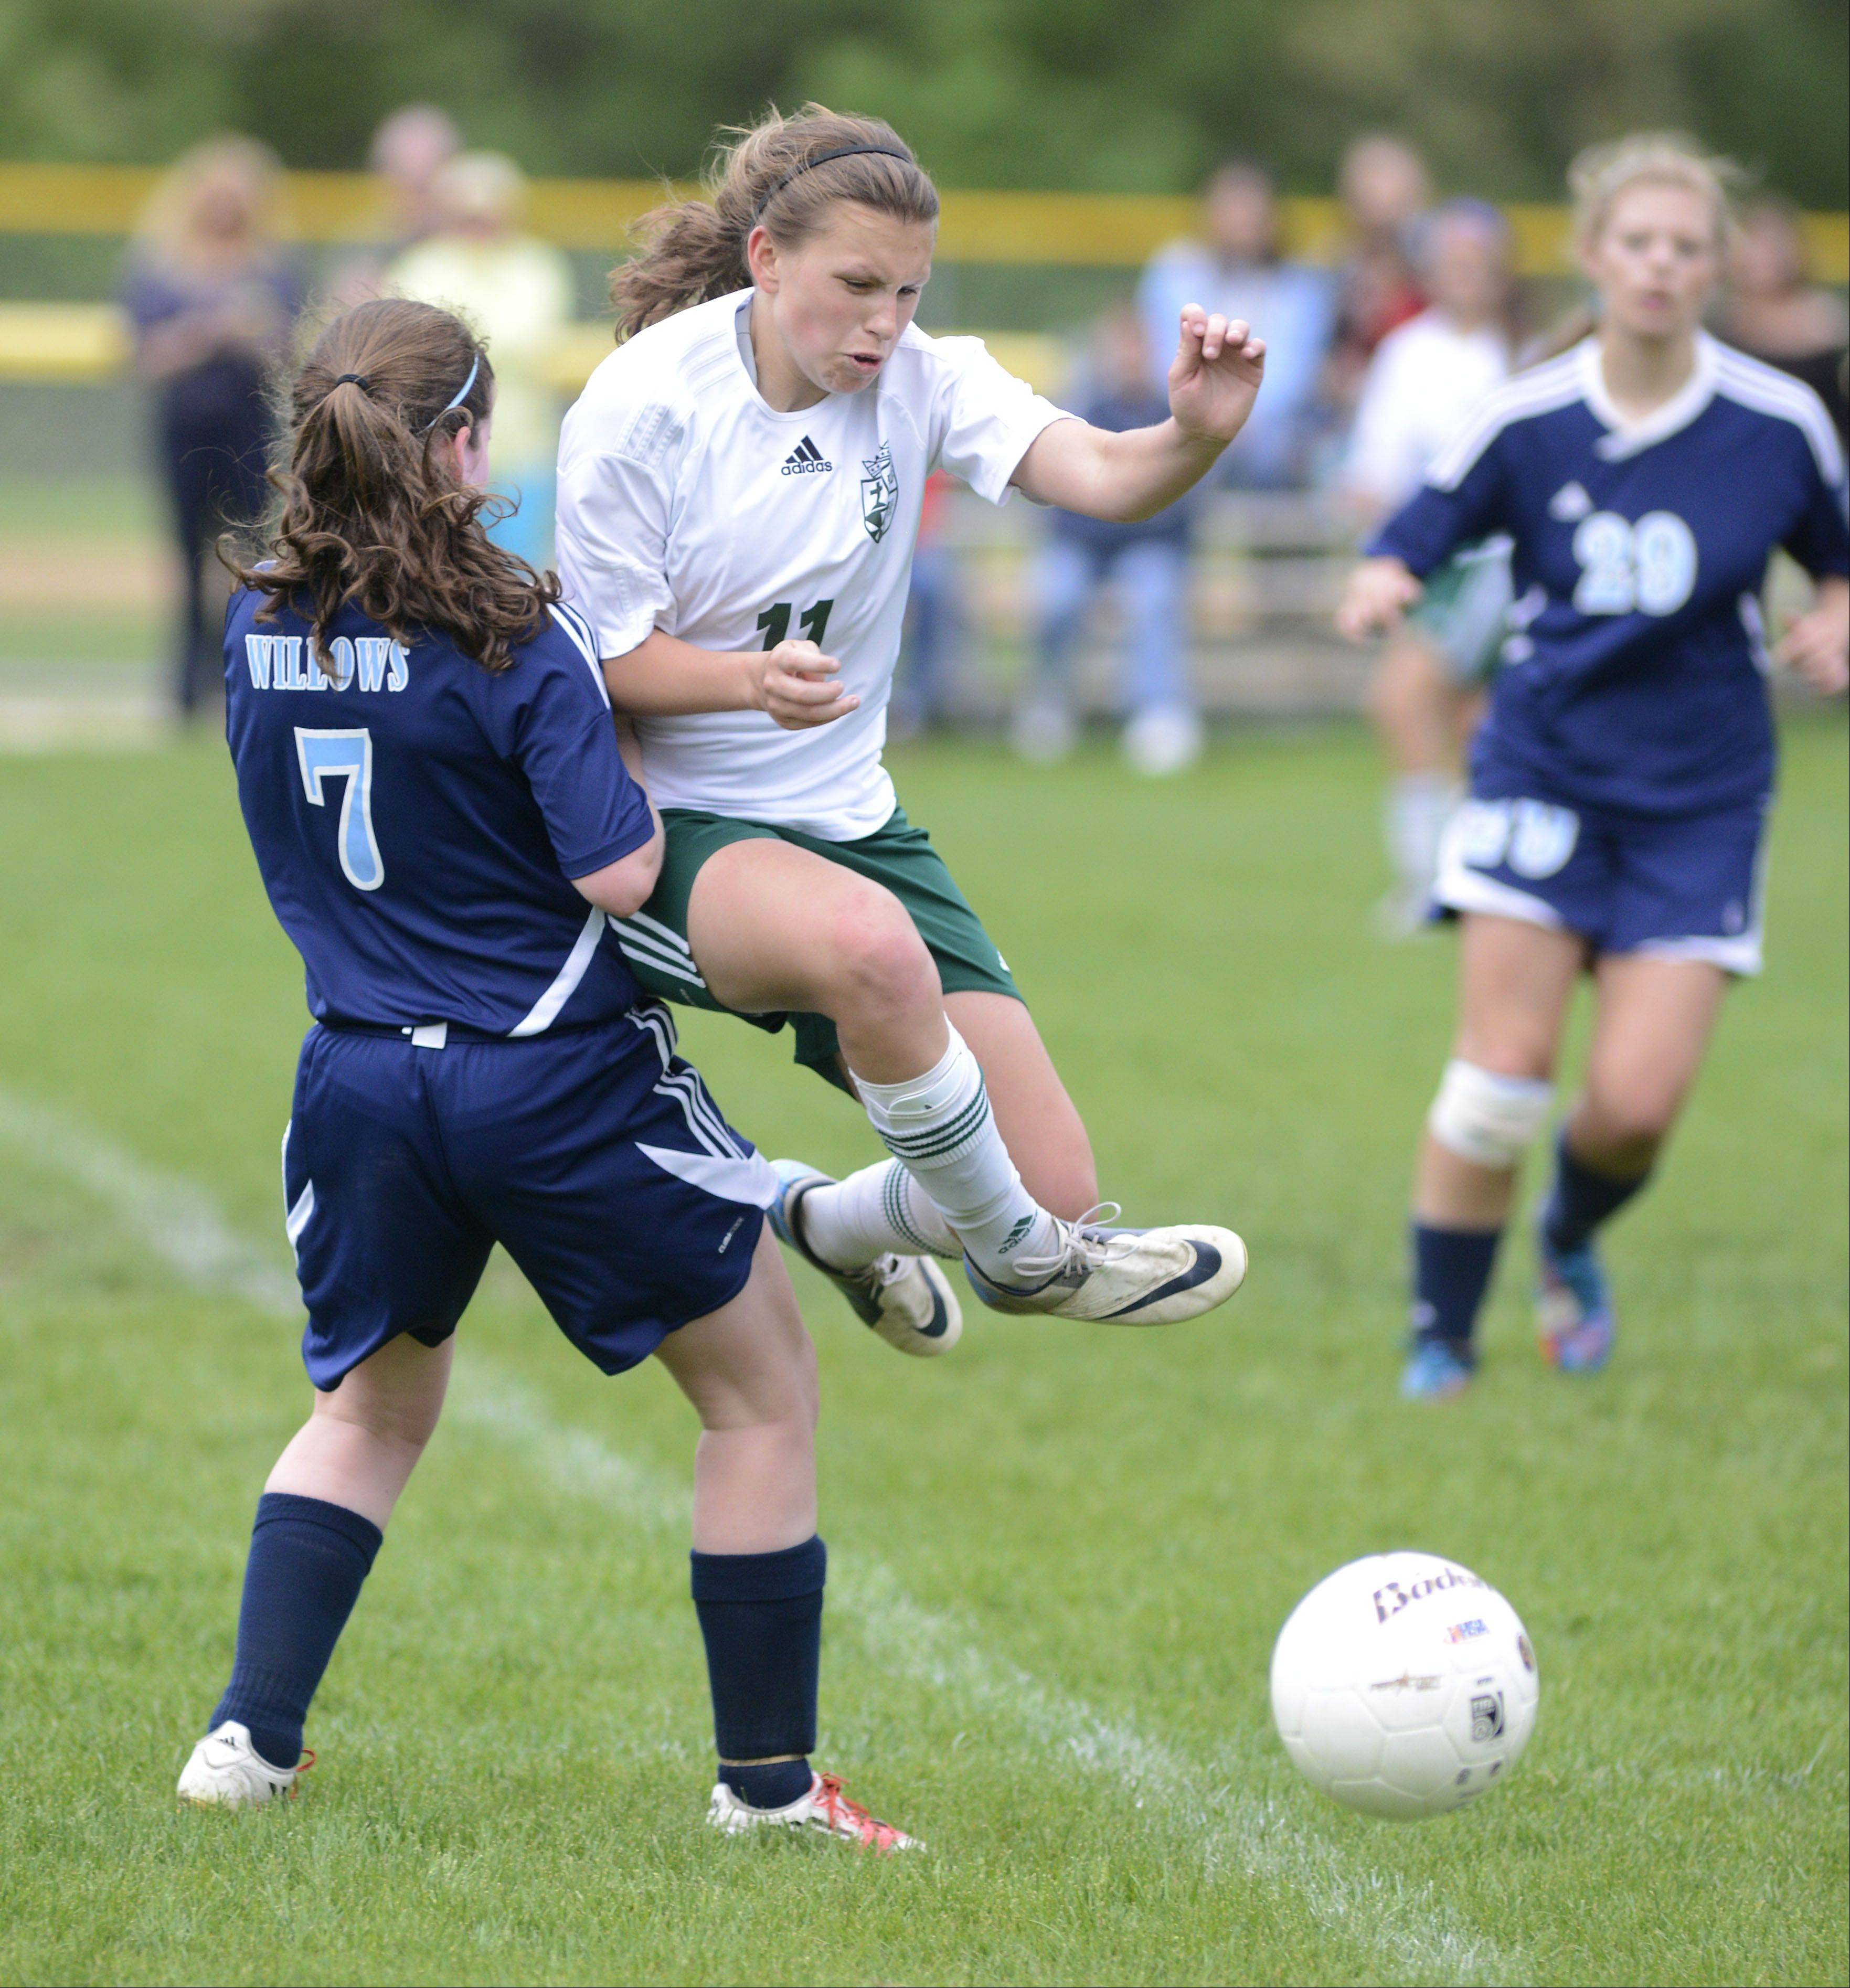 St. Edward's Allison Kruk leaps to avoid tripping over the leg of Willows Academy's Maura Walsh in the second half of the Class 1A girls soccer sectional title game on Friday, May 17.